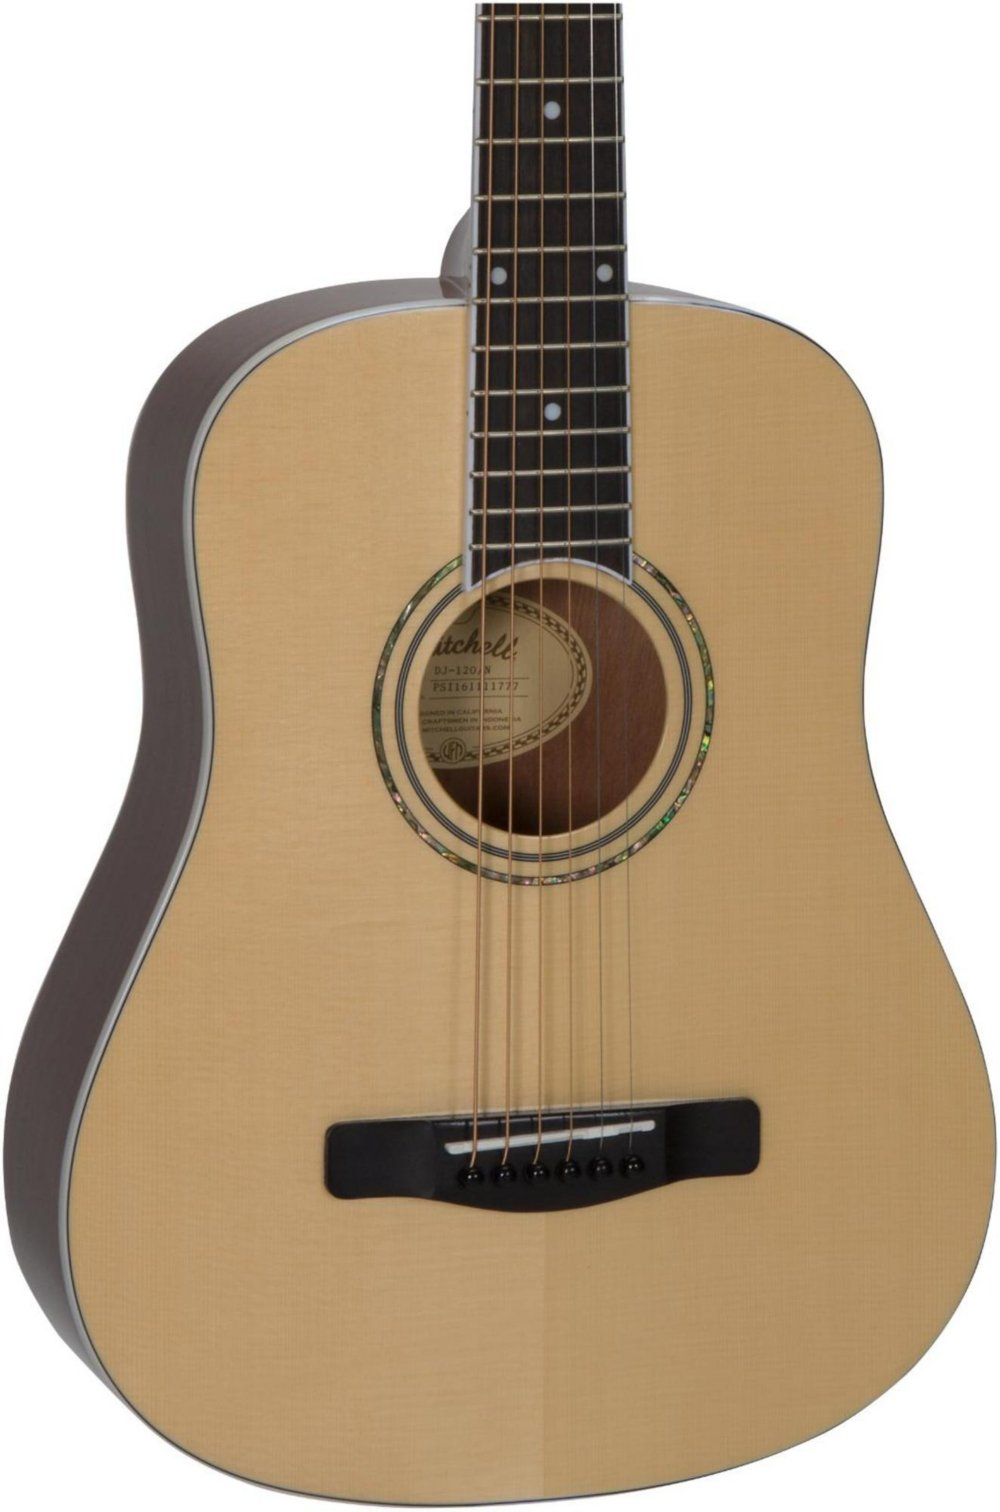 Mitchell DJ120 Travel Size Dreadnought Acoustic Guitar Natural by Mitchell